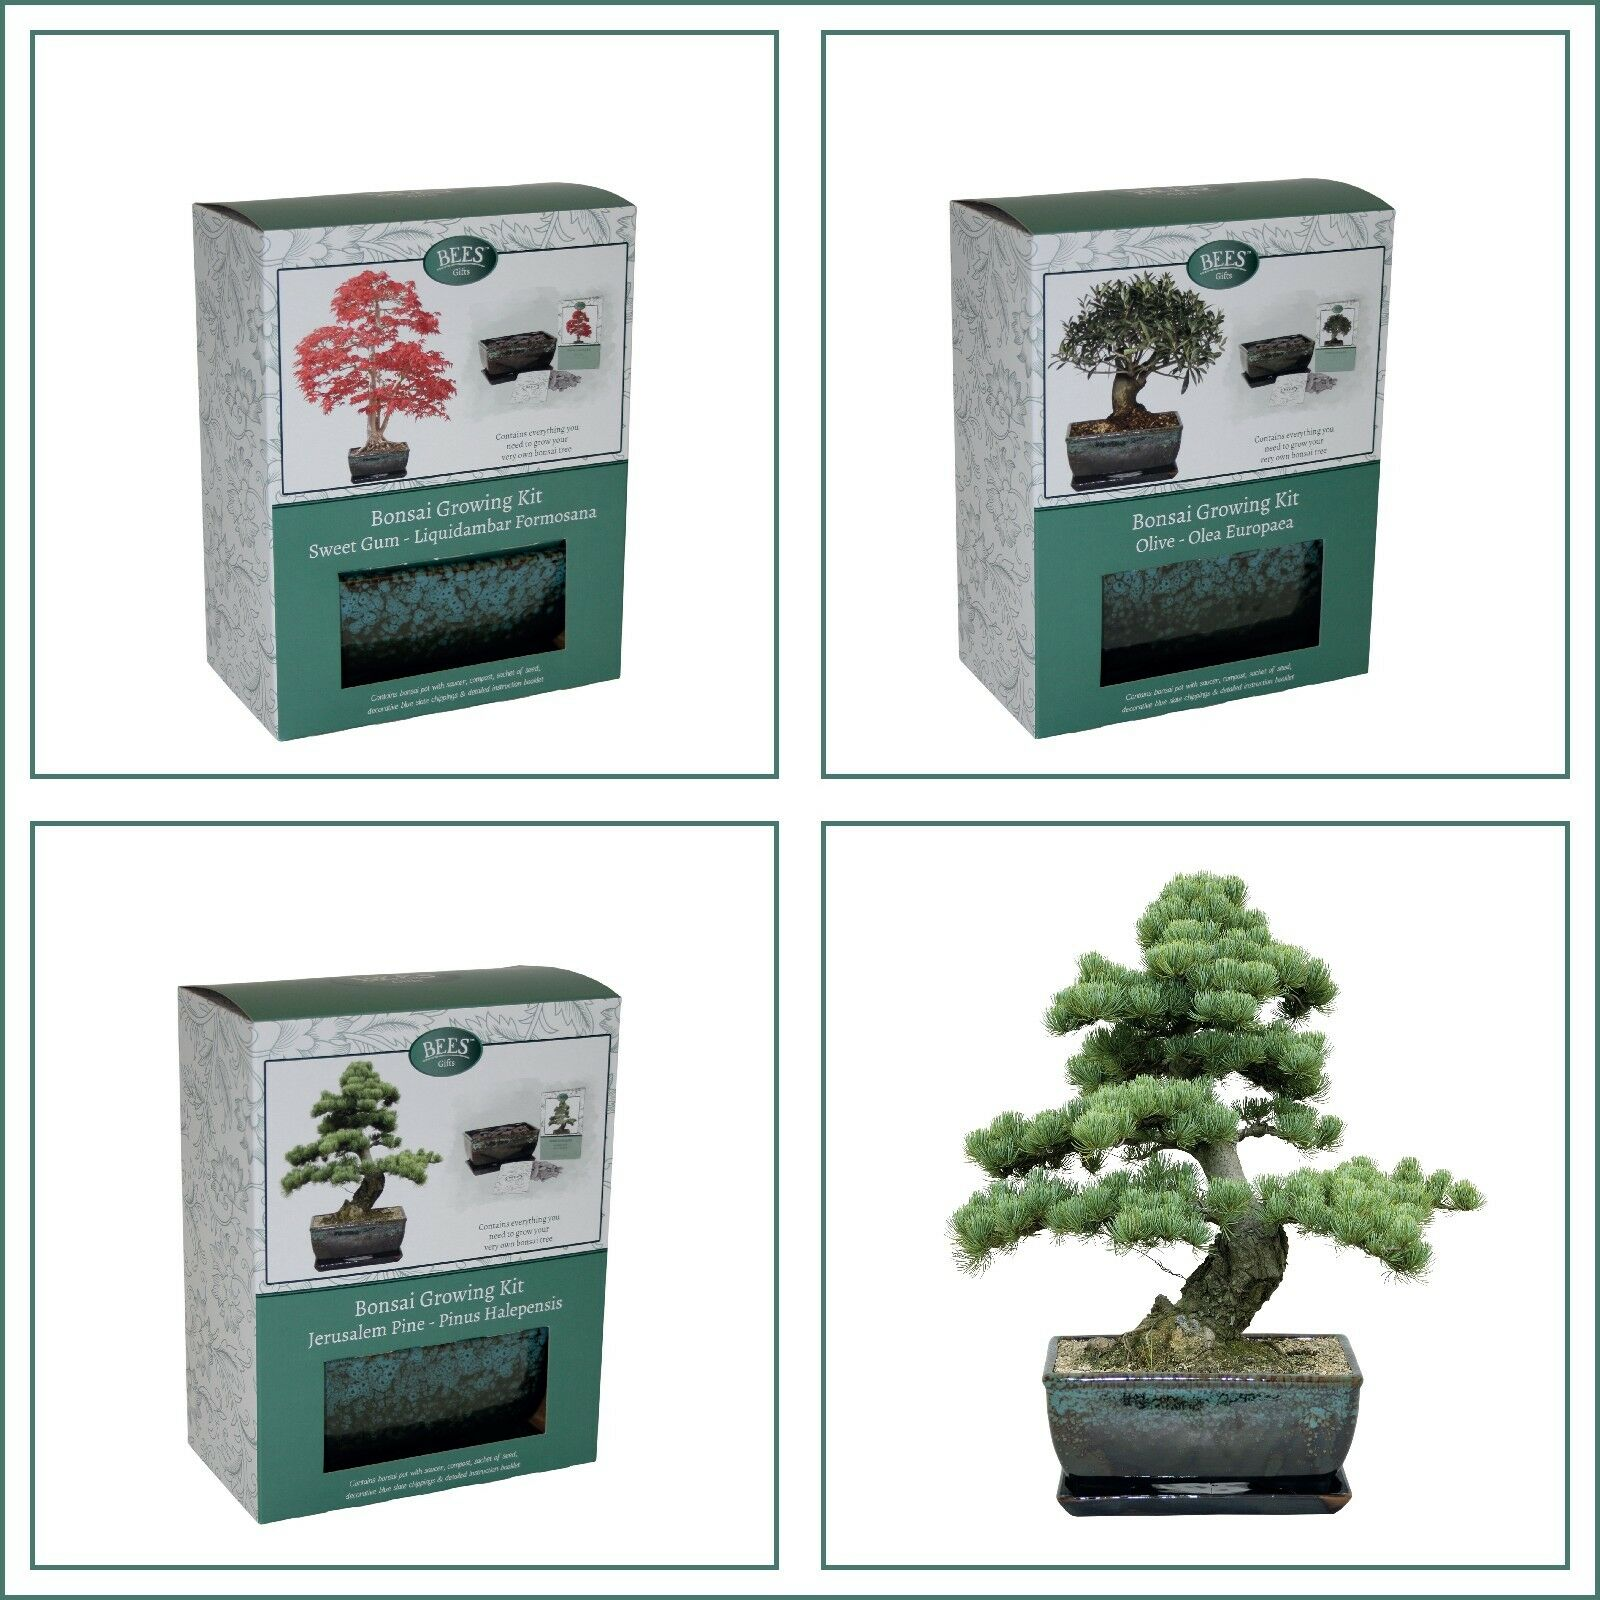 5 Bonsai Tree Kit to Grow Your Own From